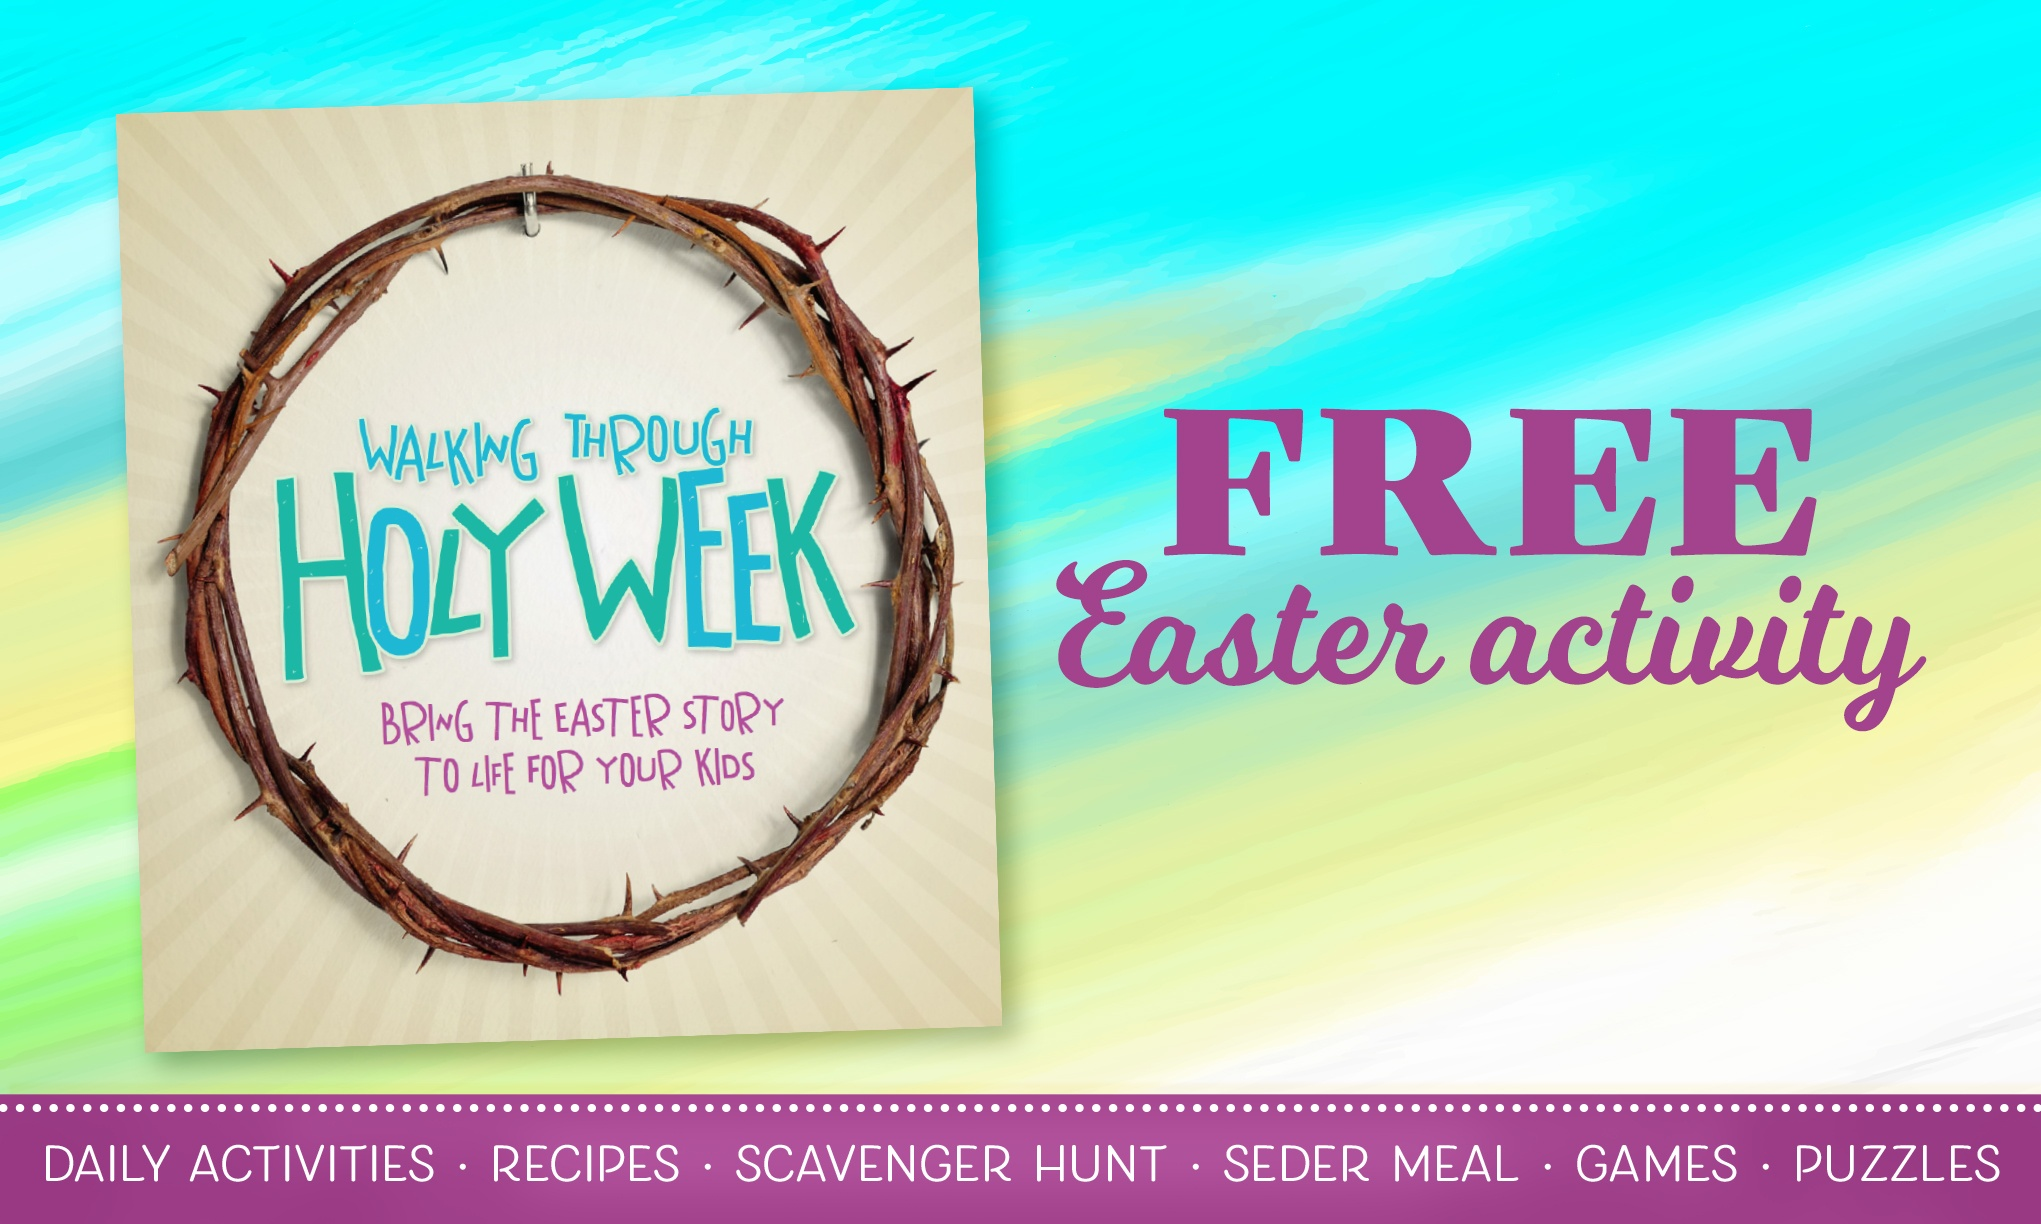 Walking Through Holy Week - A Free Easter Activity